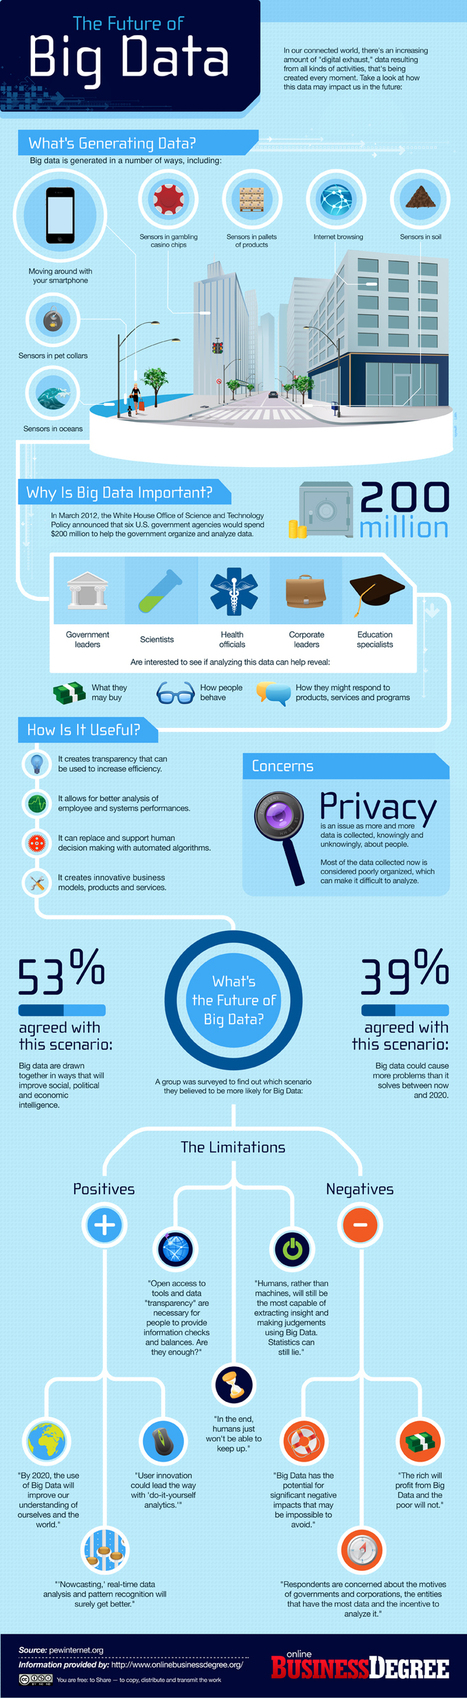 Infographic: the Future of Big Data | Emergent Digital Practices | Scoop.it